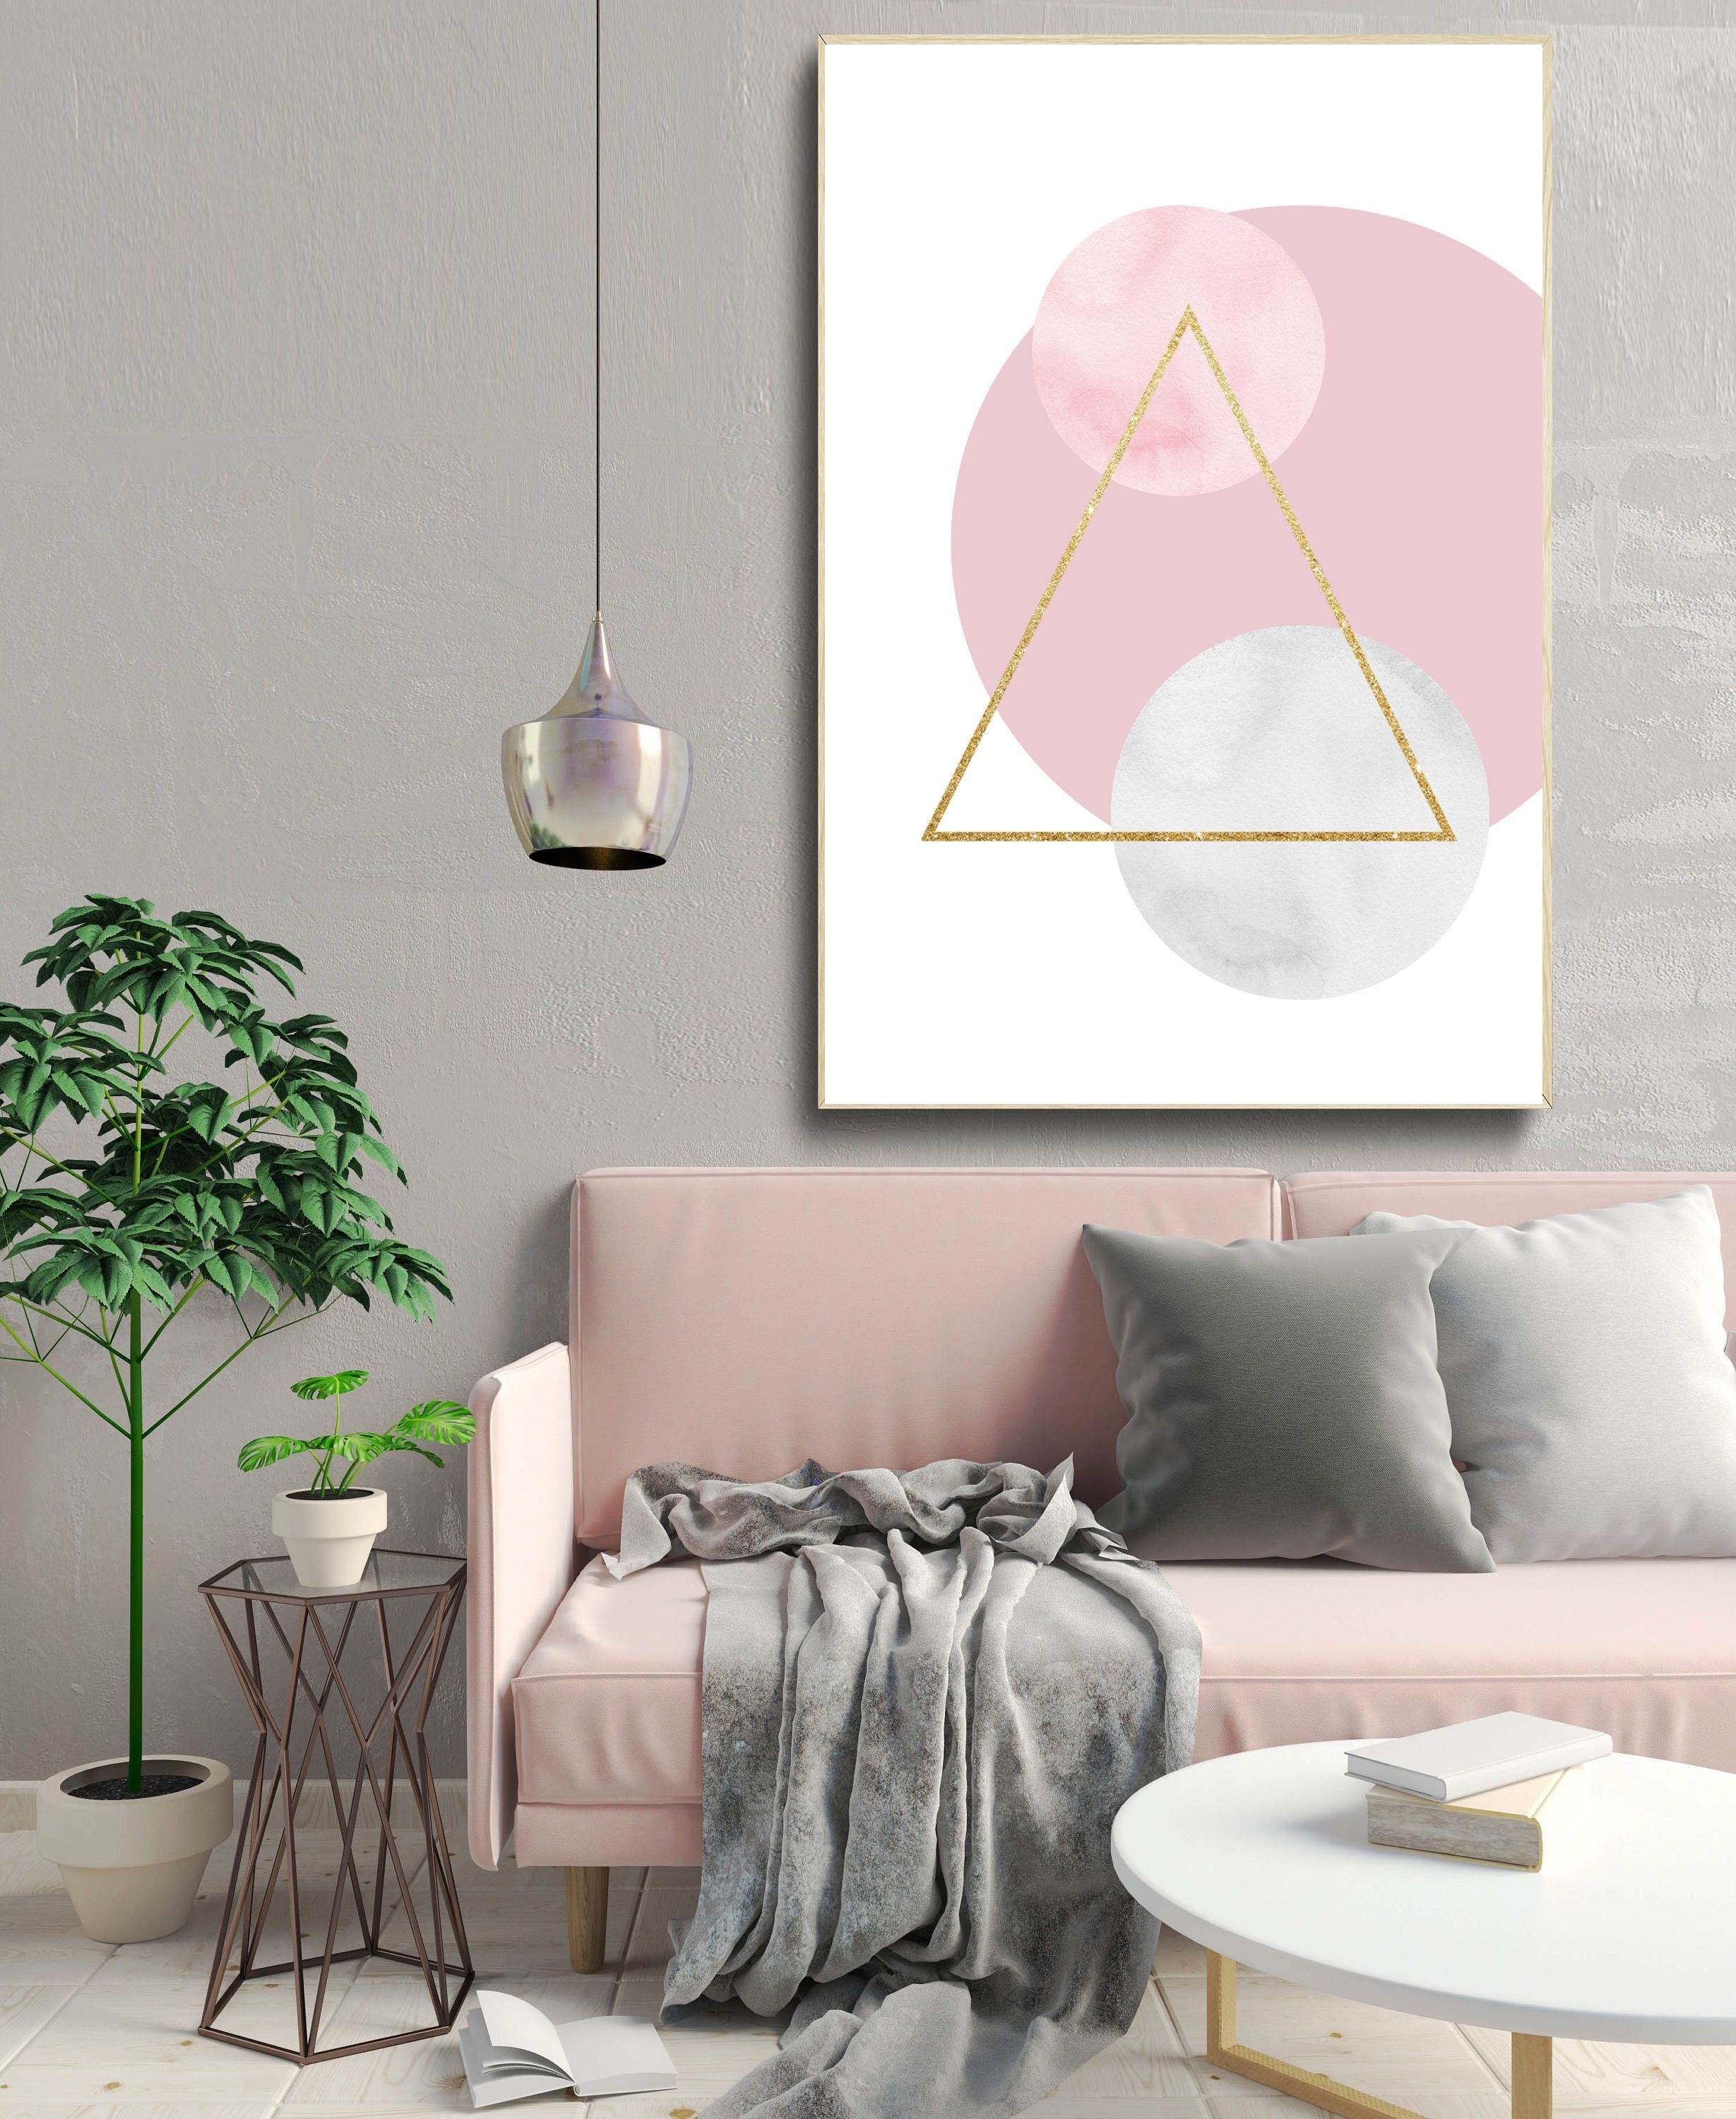 Geometric Abstract Art Print, Shapes Wall Art, Nordic Design Inside Latest Scandinavian Fabric Wall Art (View 7 of 15)